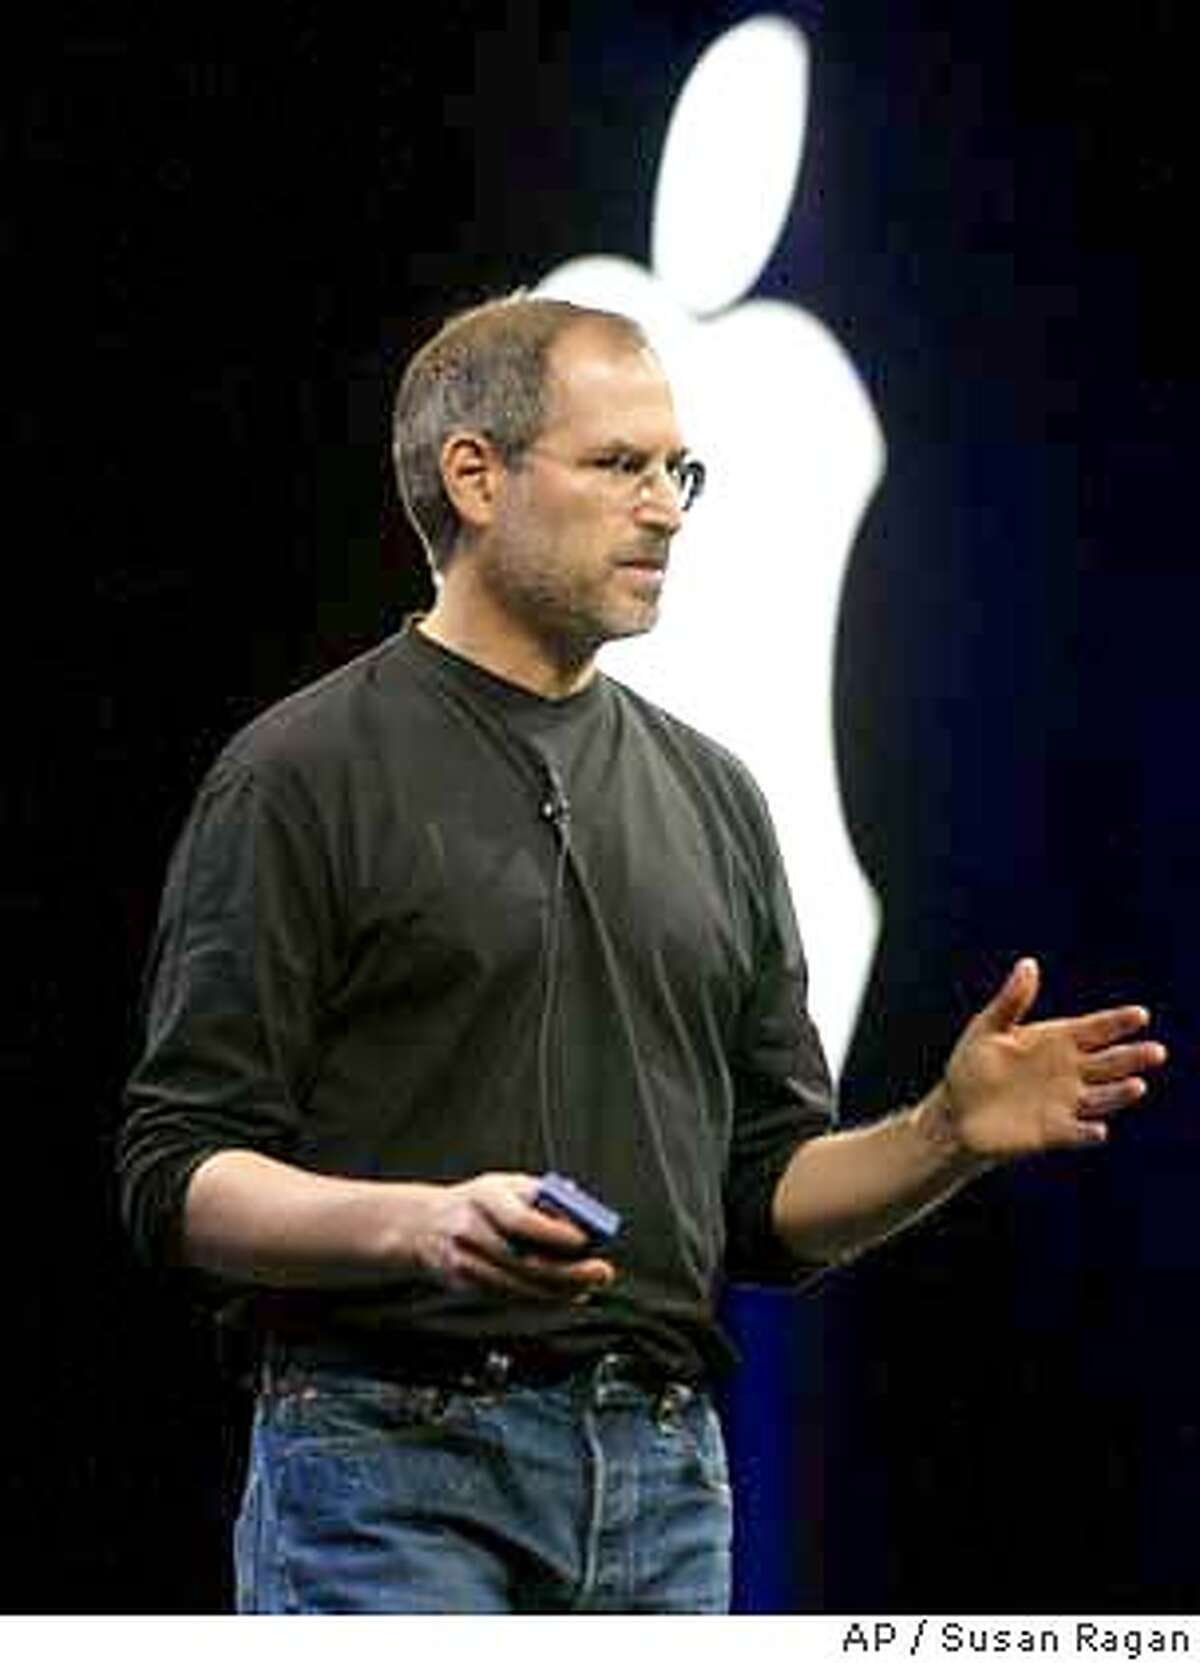 Apple CEO Steve Jobs introduces the new Mac OS Panther at the Apple Worldwide Developers Conference in San Francisco on Monday, June 23, 2003. Jobs also introduced the new G5 computer made in collaboration with IBM. (AP Photo/Susan Ragan)